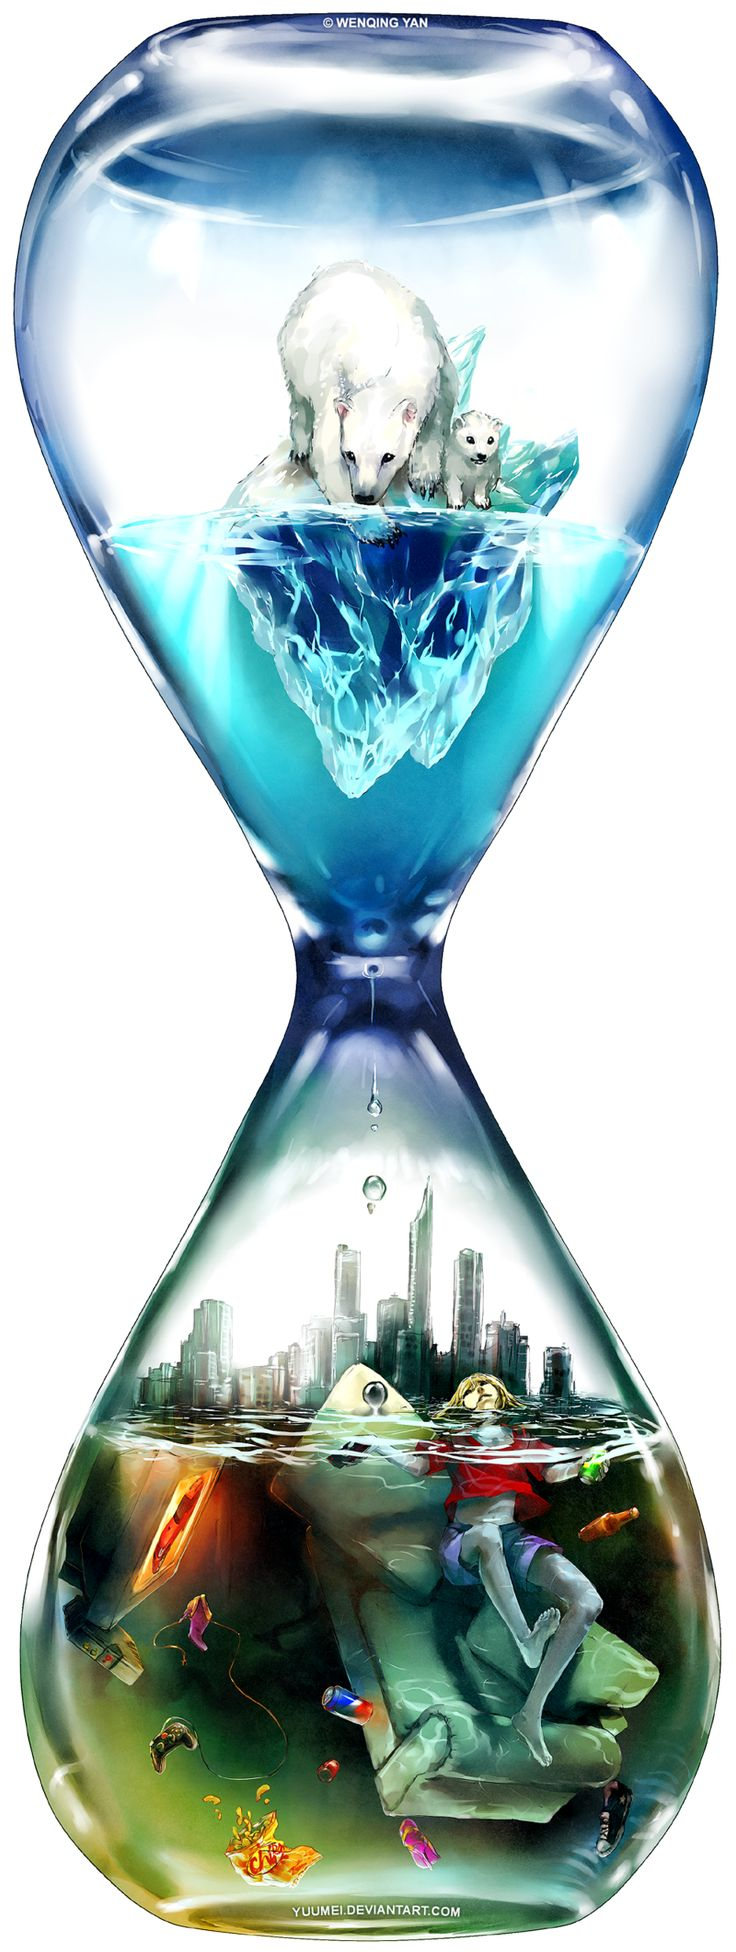 I think everyone have to see this and the artist other works Countdown by yuumei.deviantart.com on @DeviantArt